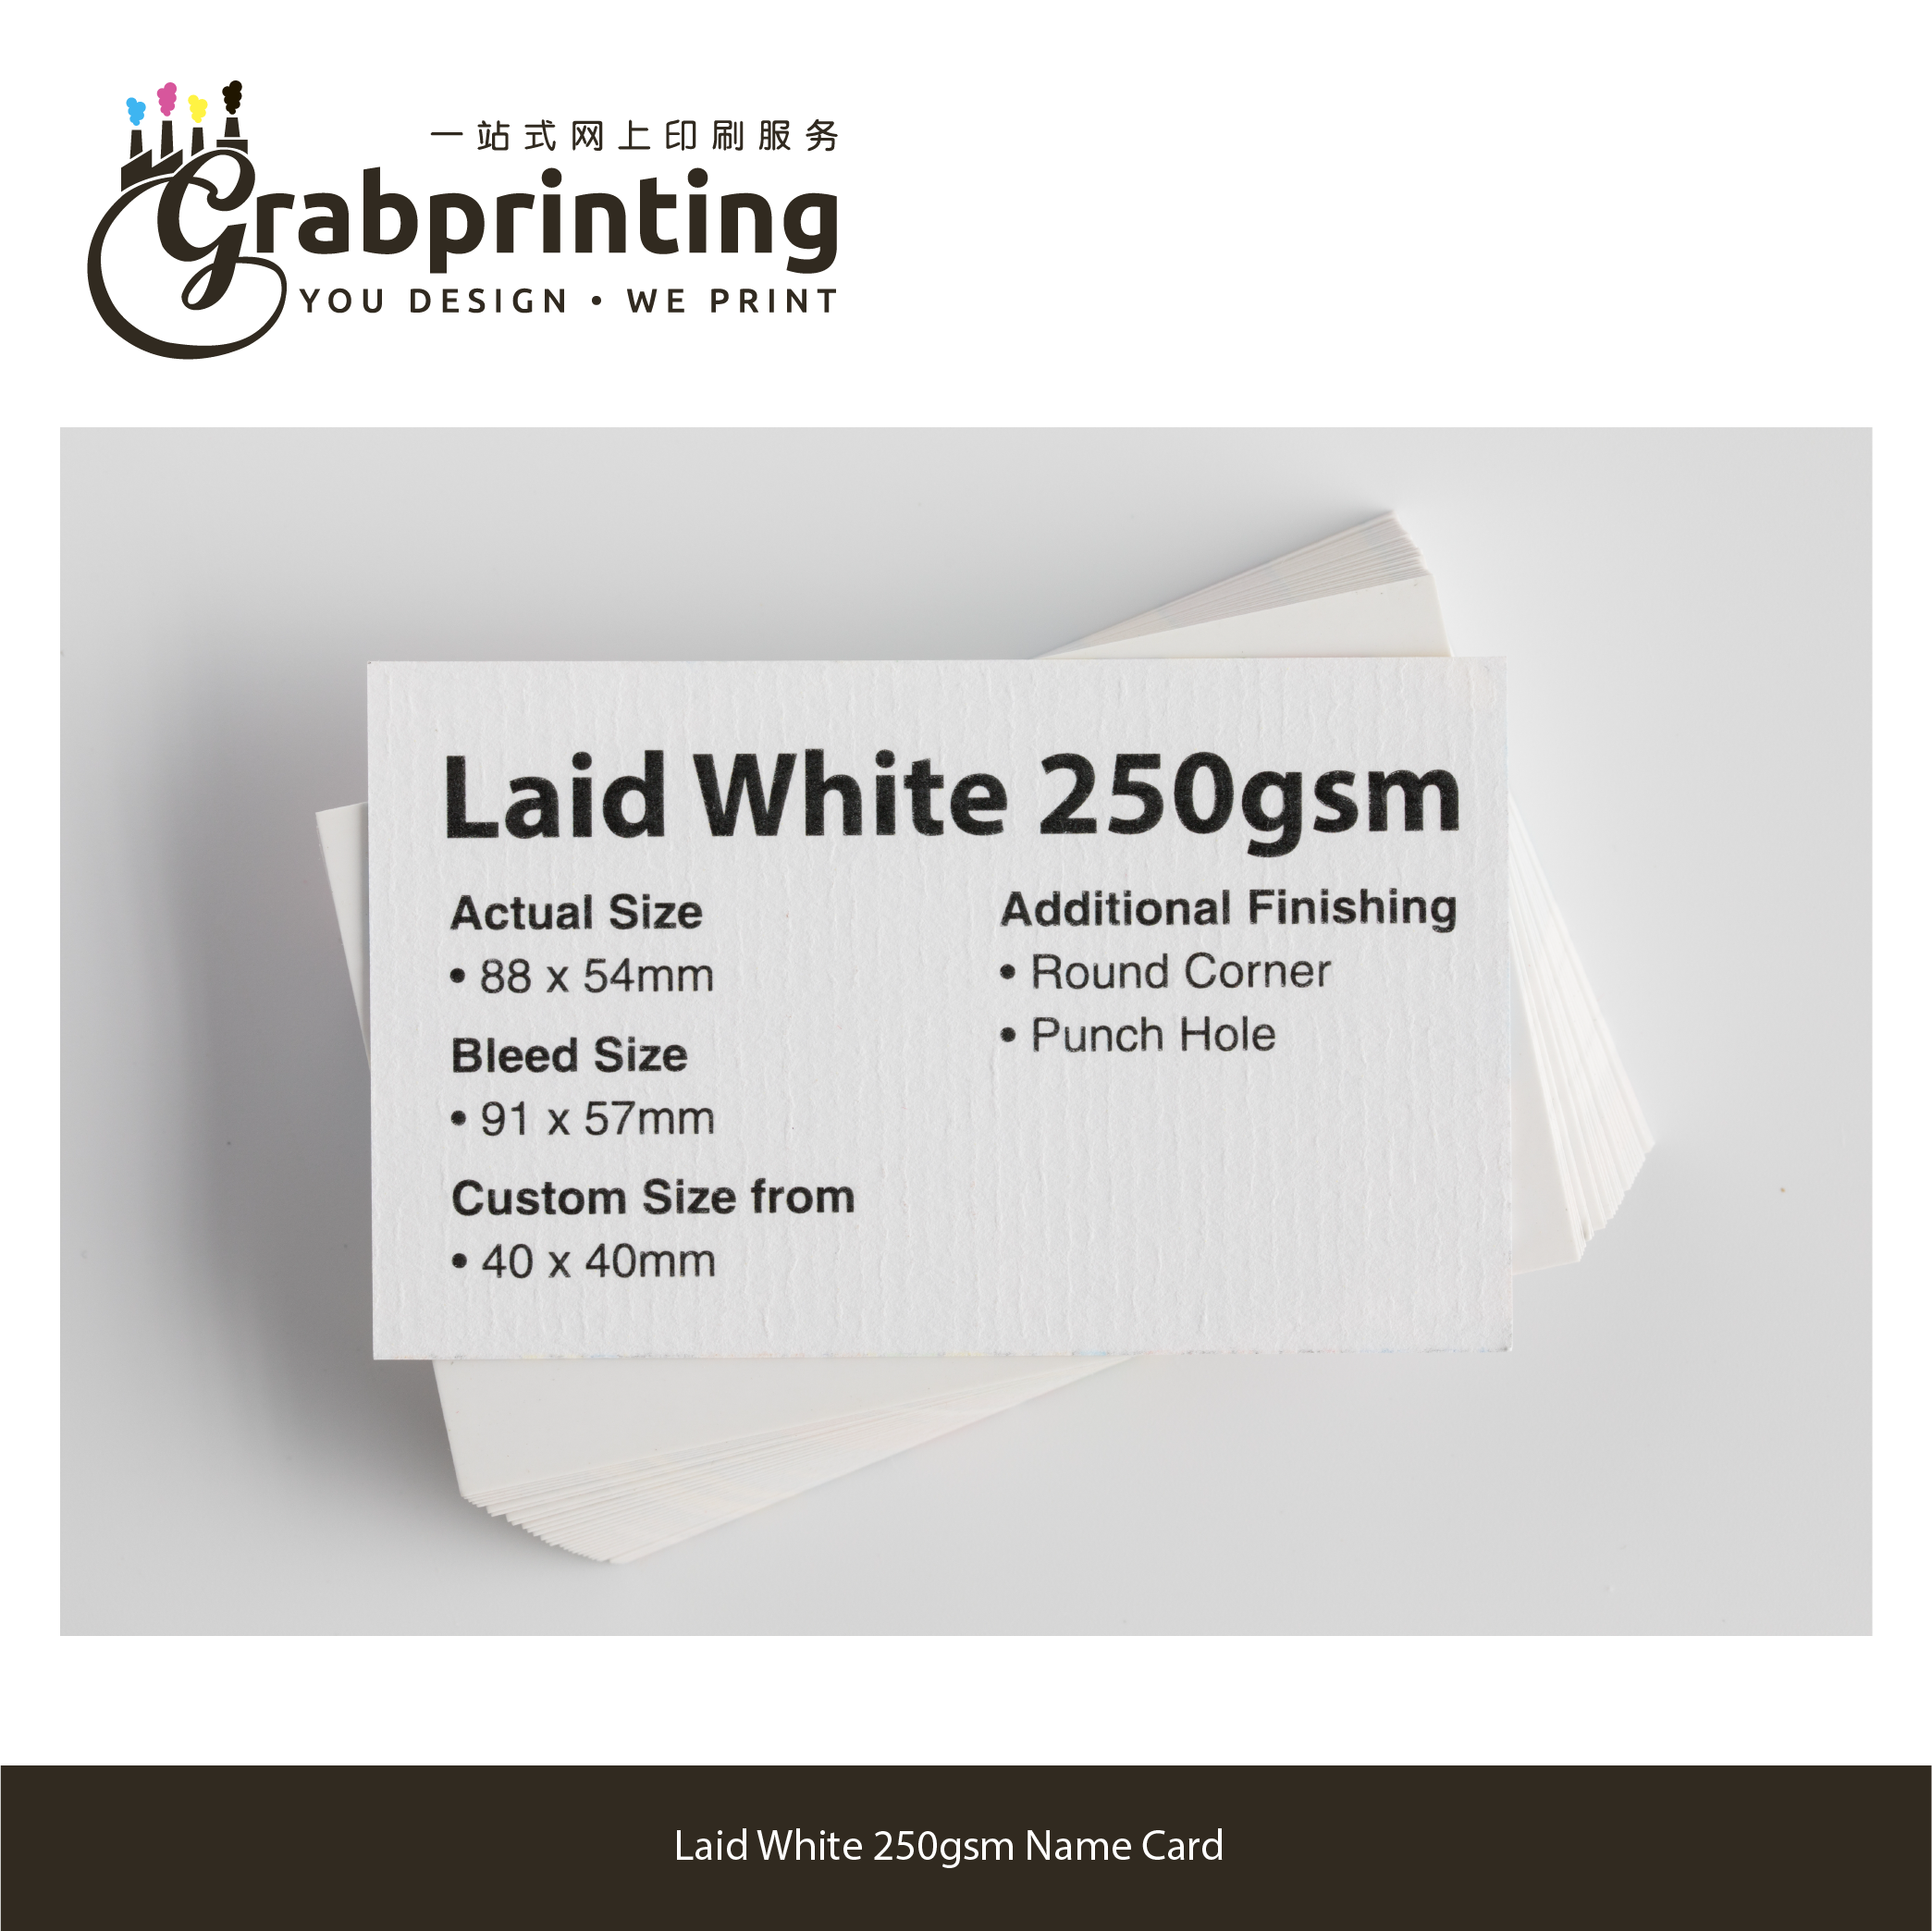 Name Card Sample Kit grabprinting 33 Laid White 250gsm Name Card 501px 501px